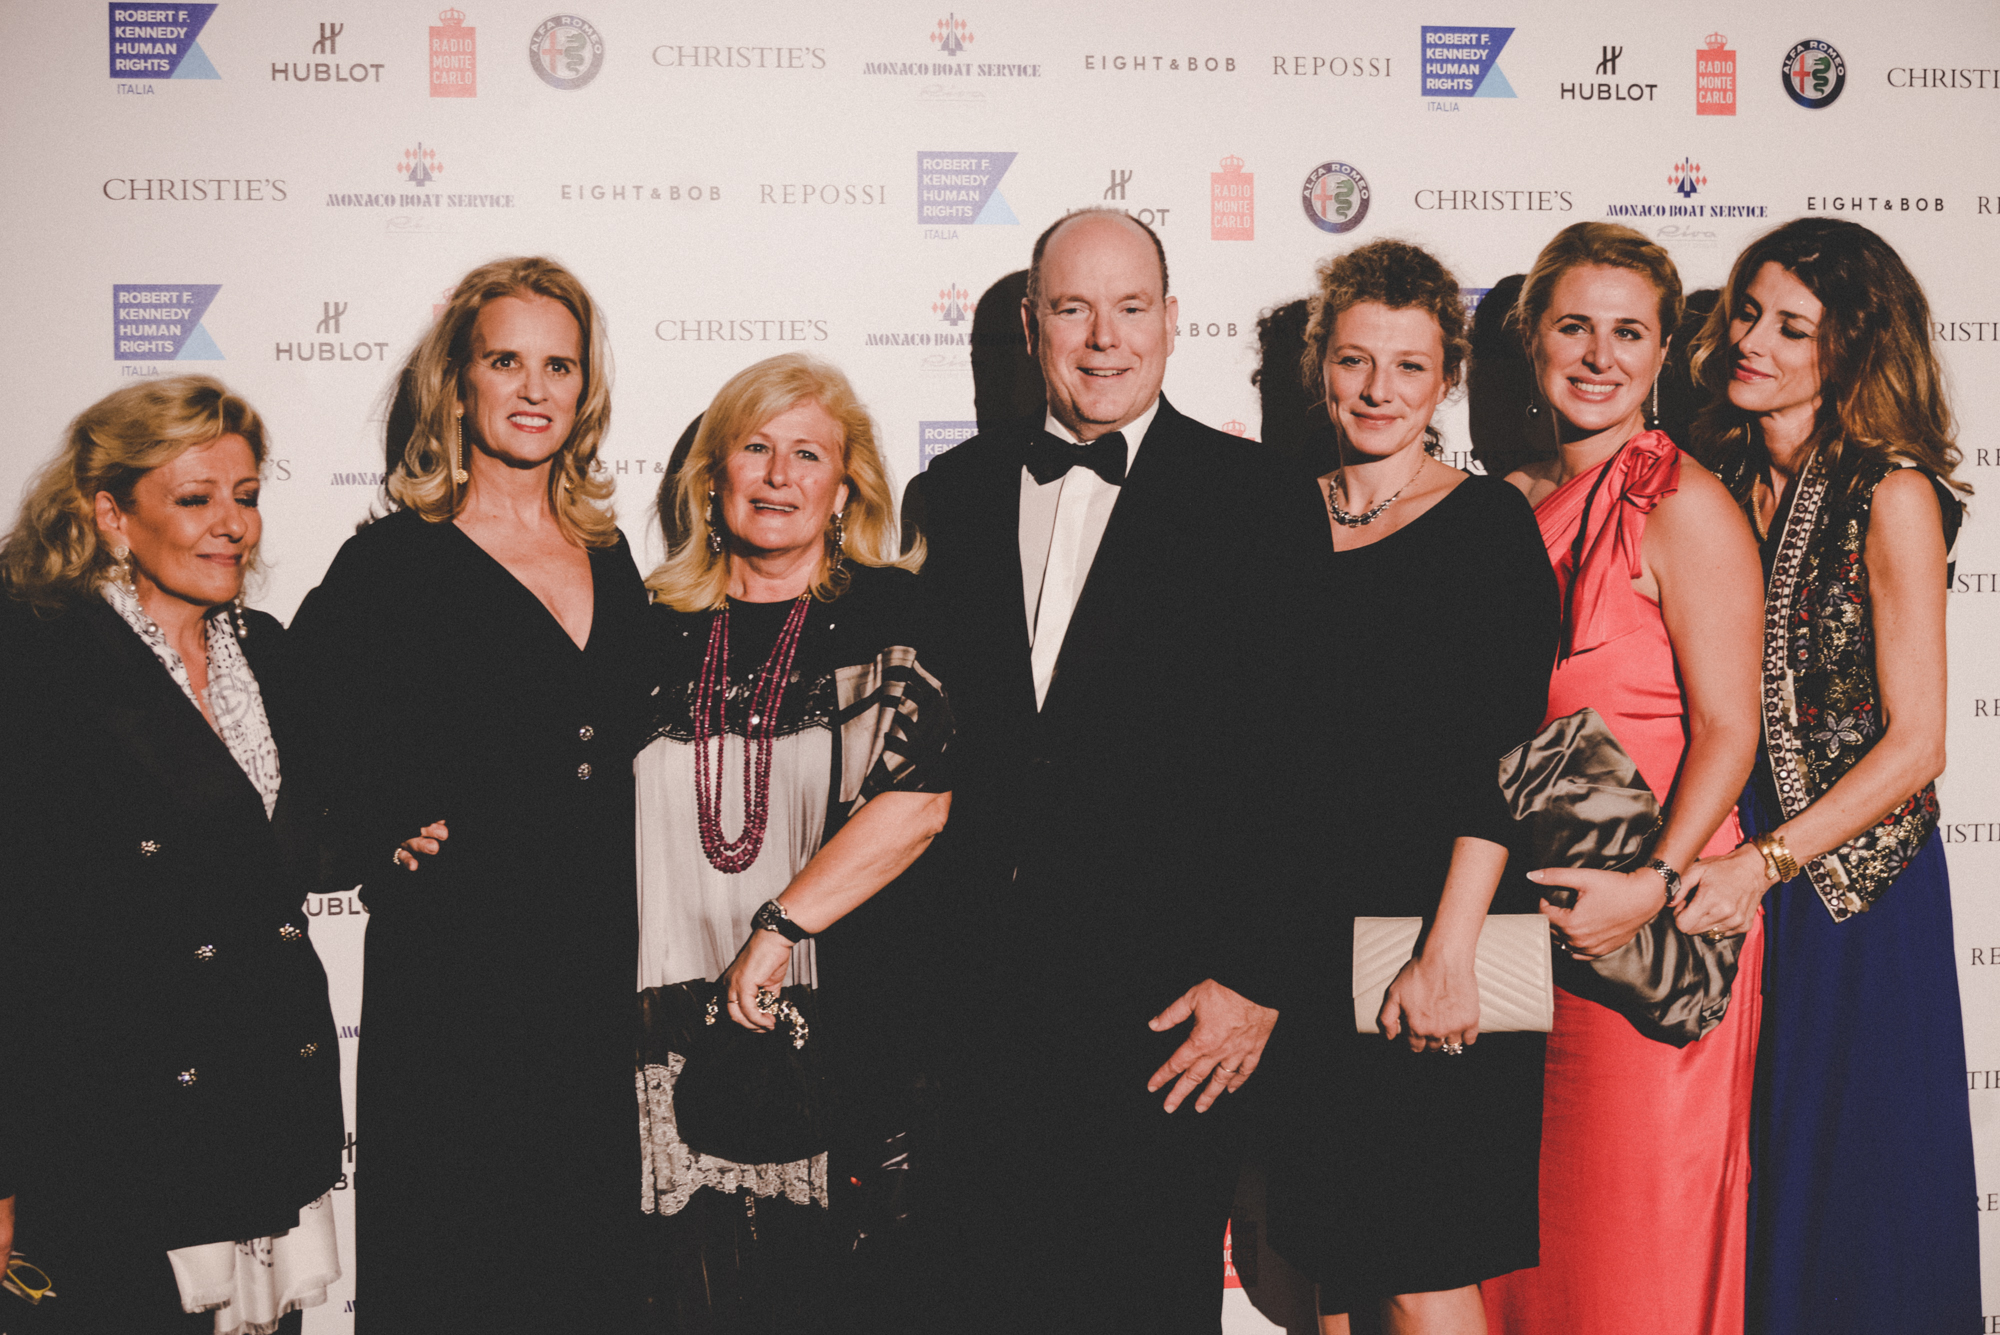 Kerry Kennedy, Prince Albert II of Monaco, Lia Riva and other guests